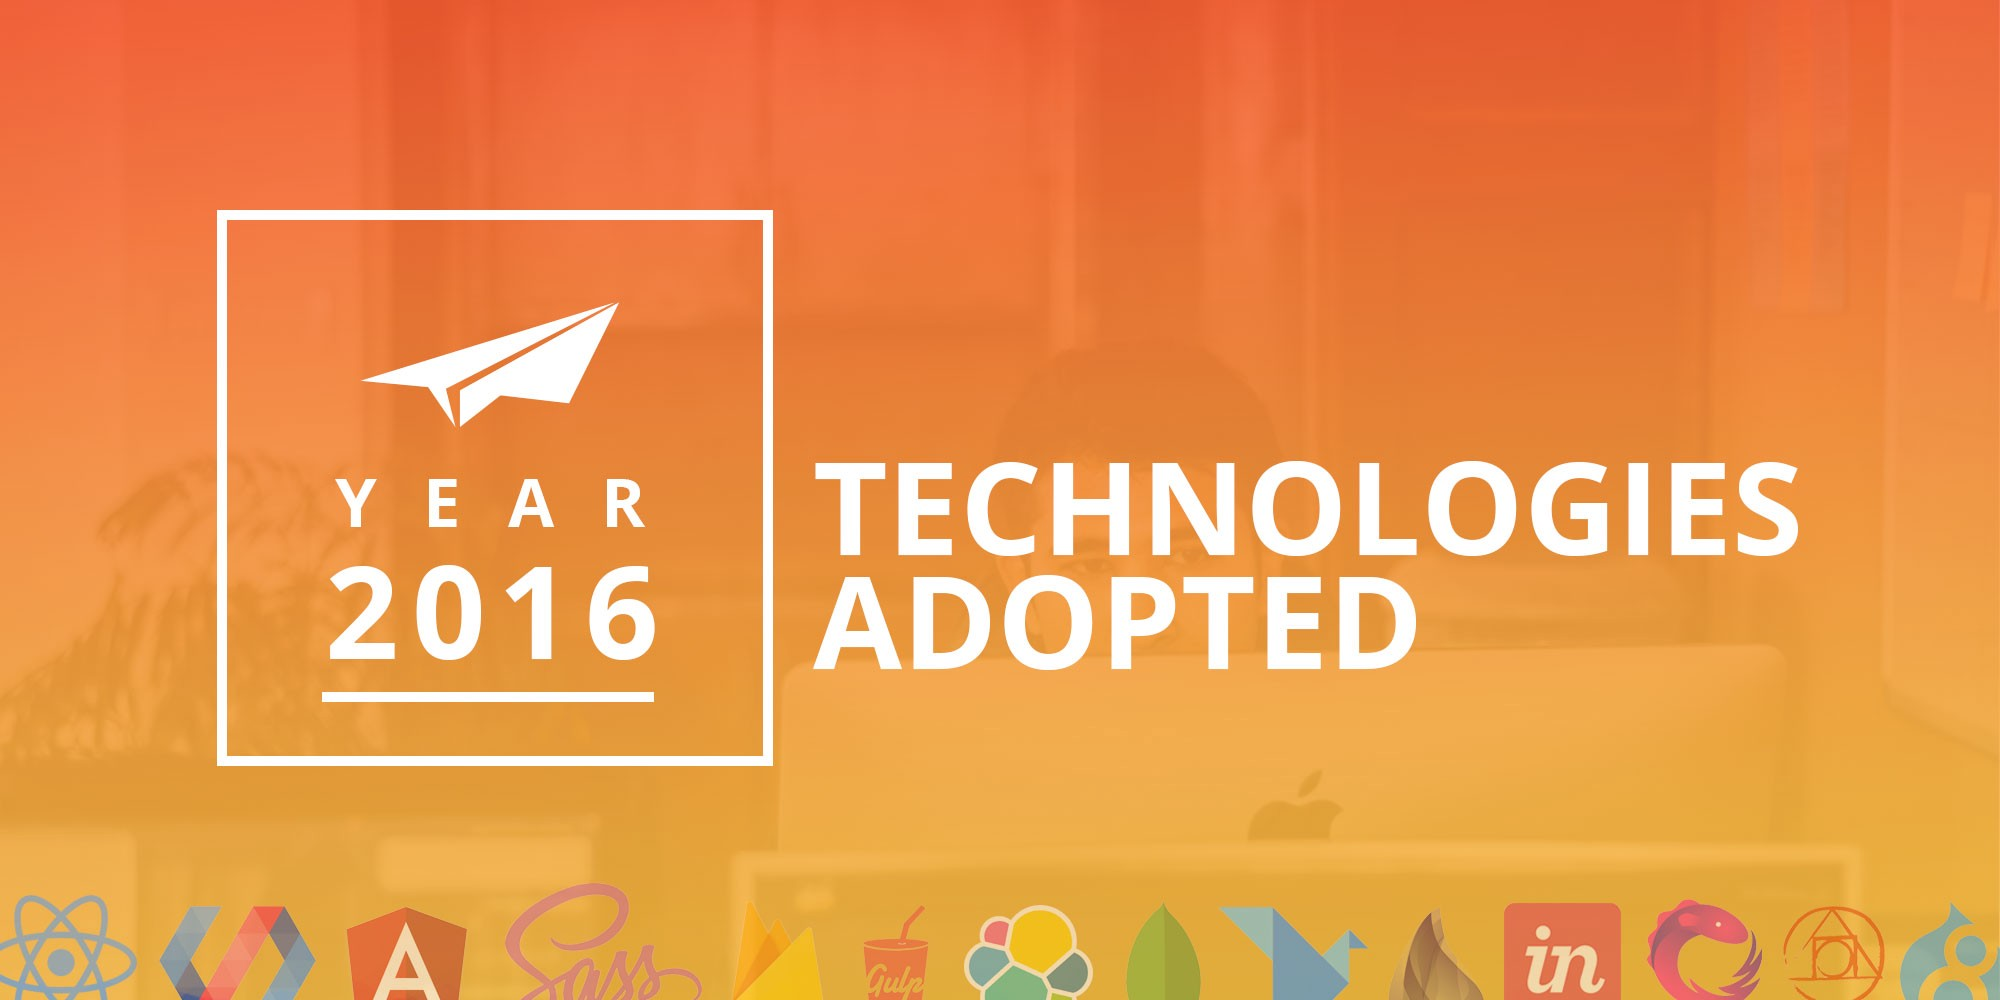 New Technologies adopted — Year 2016 at YoungInnovations